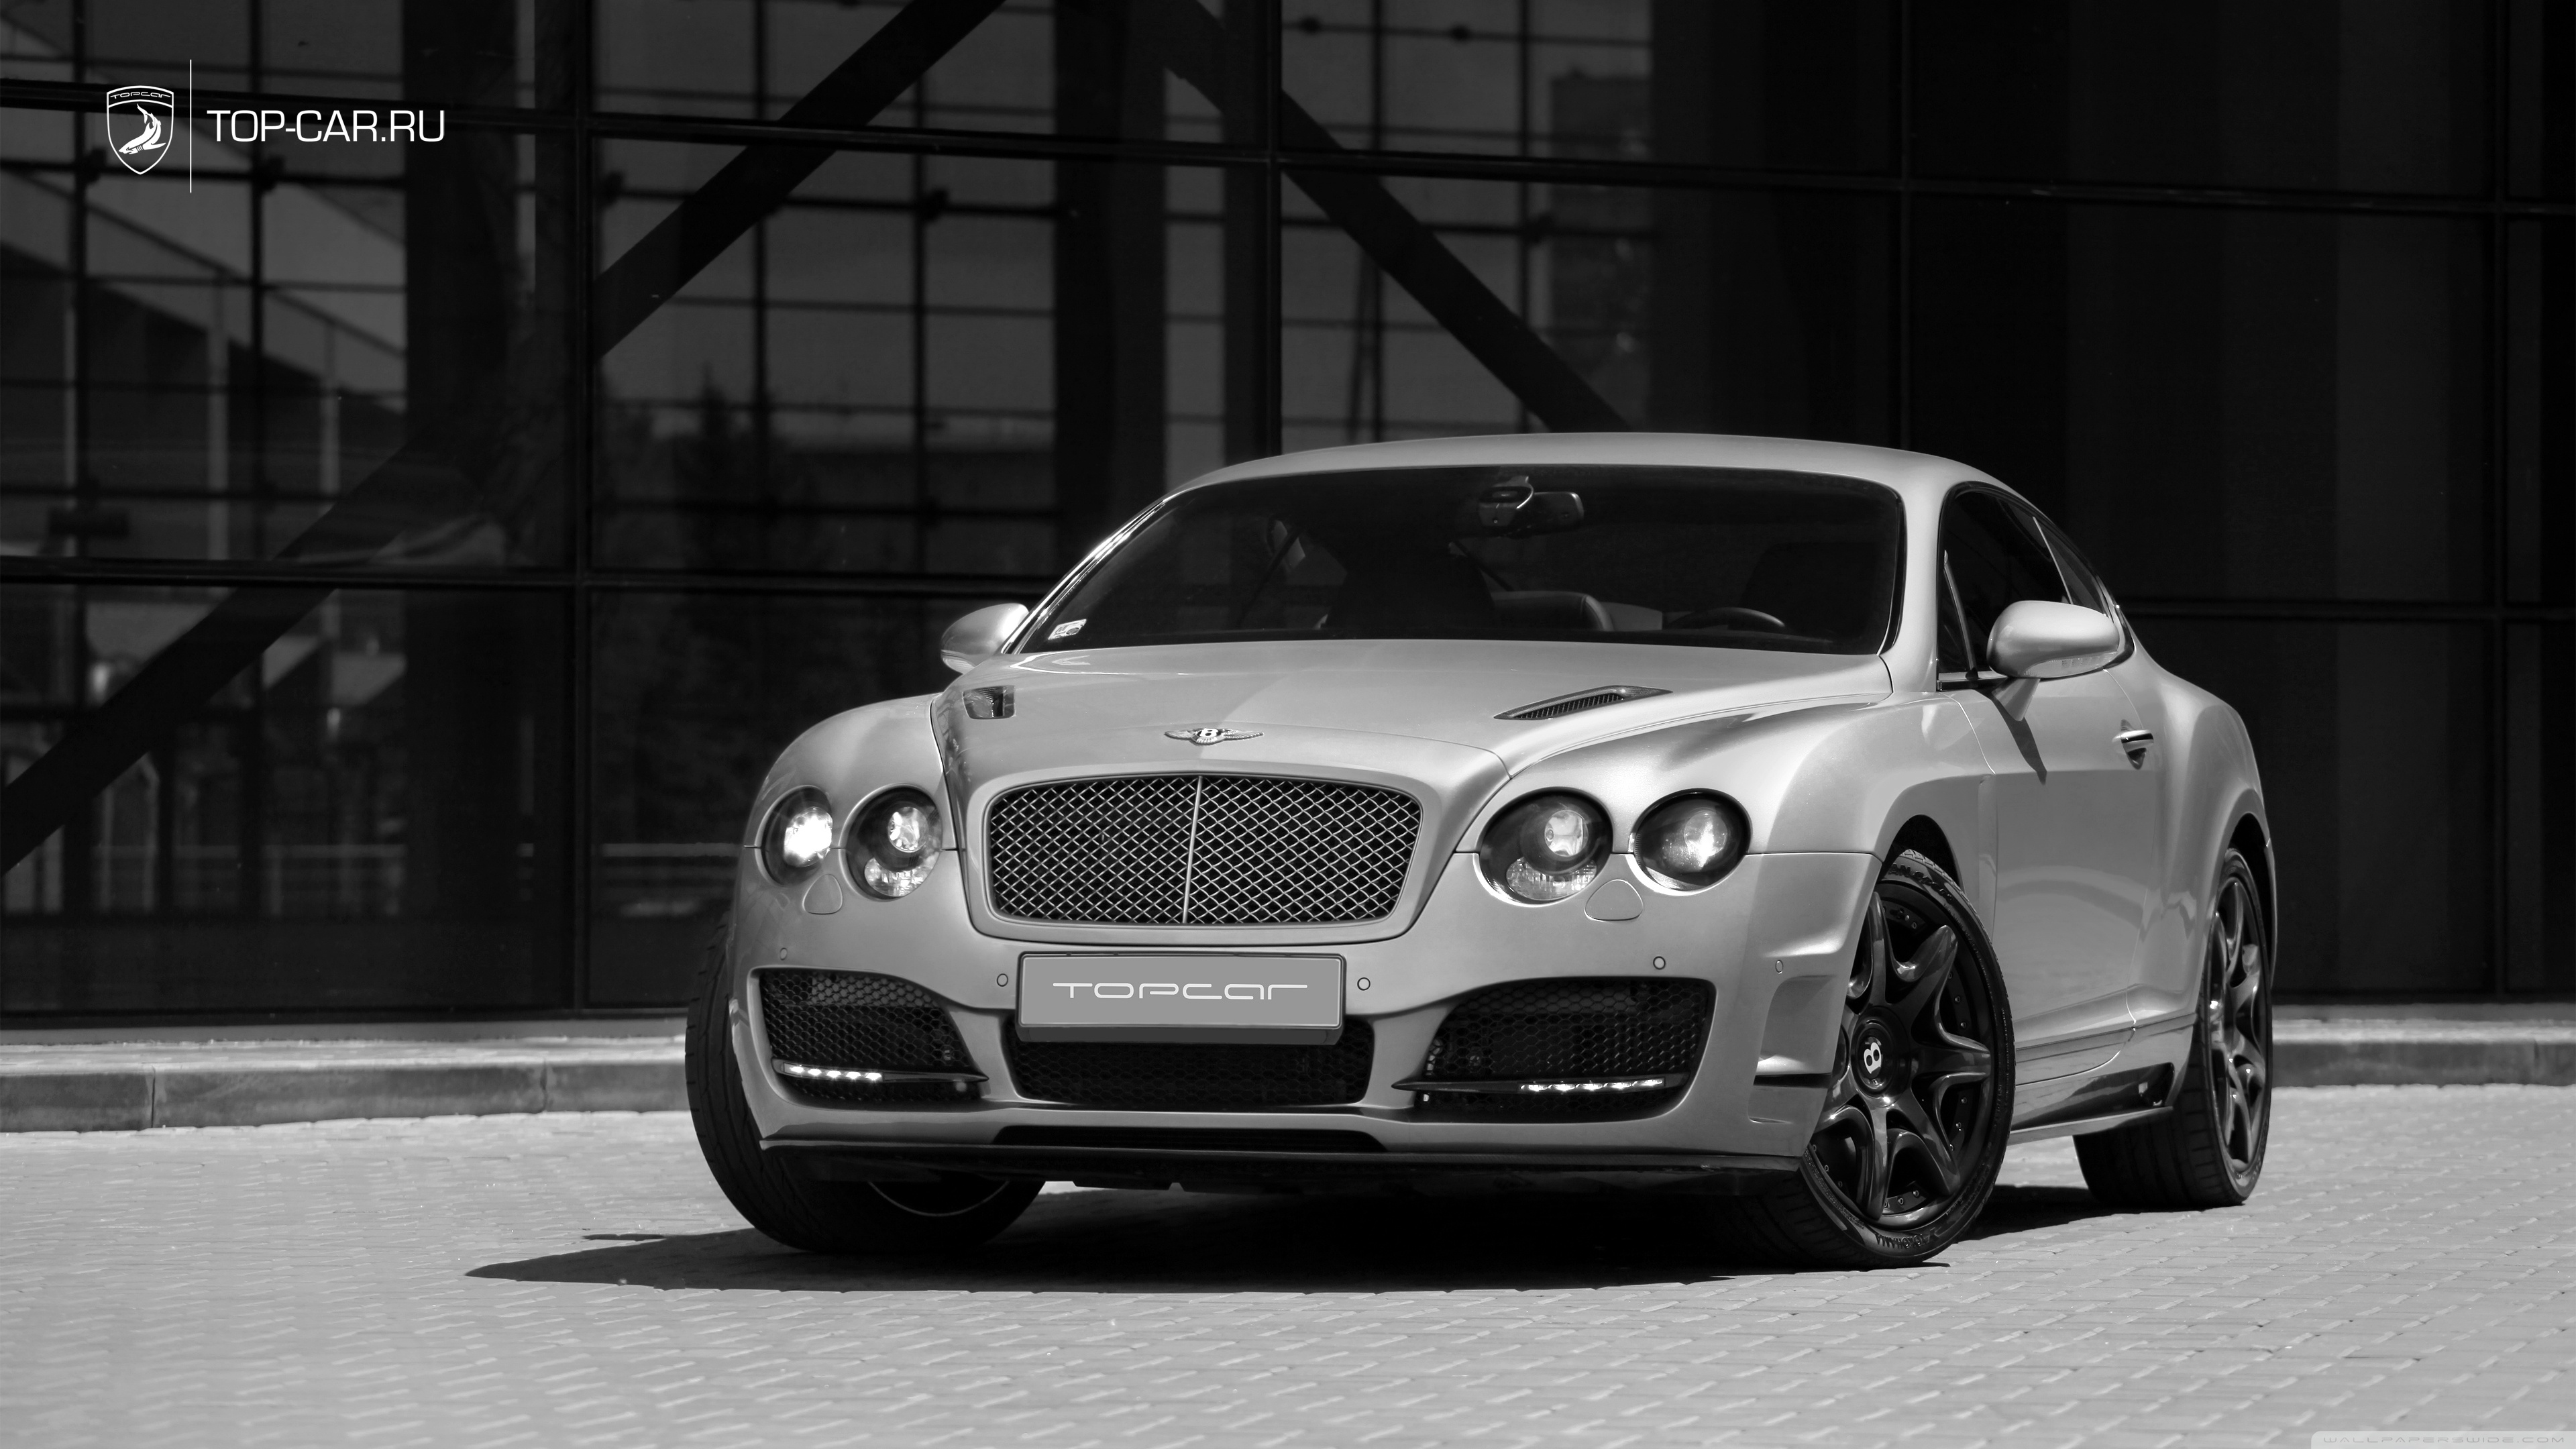 3840x2160 - Bentley Continental GT Wallpapers 25